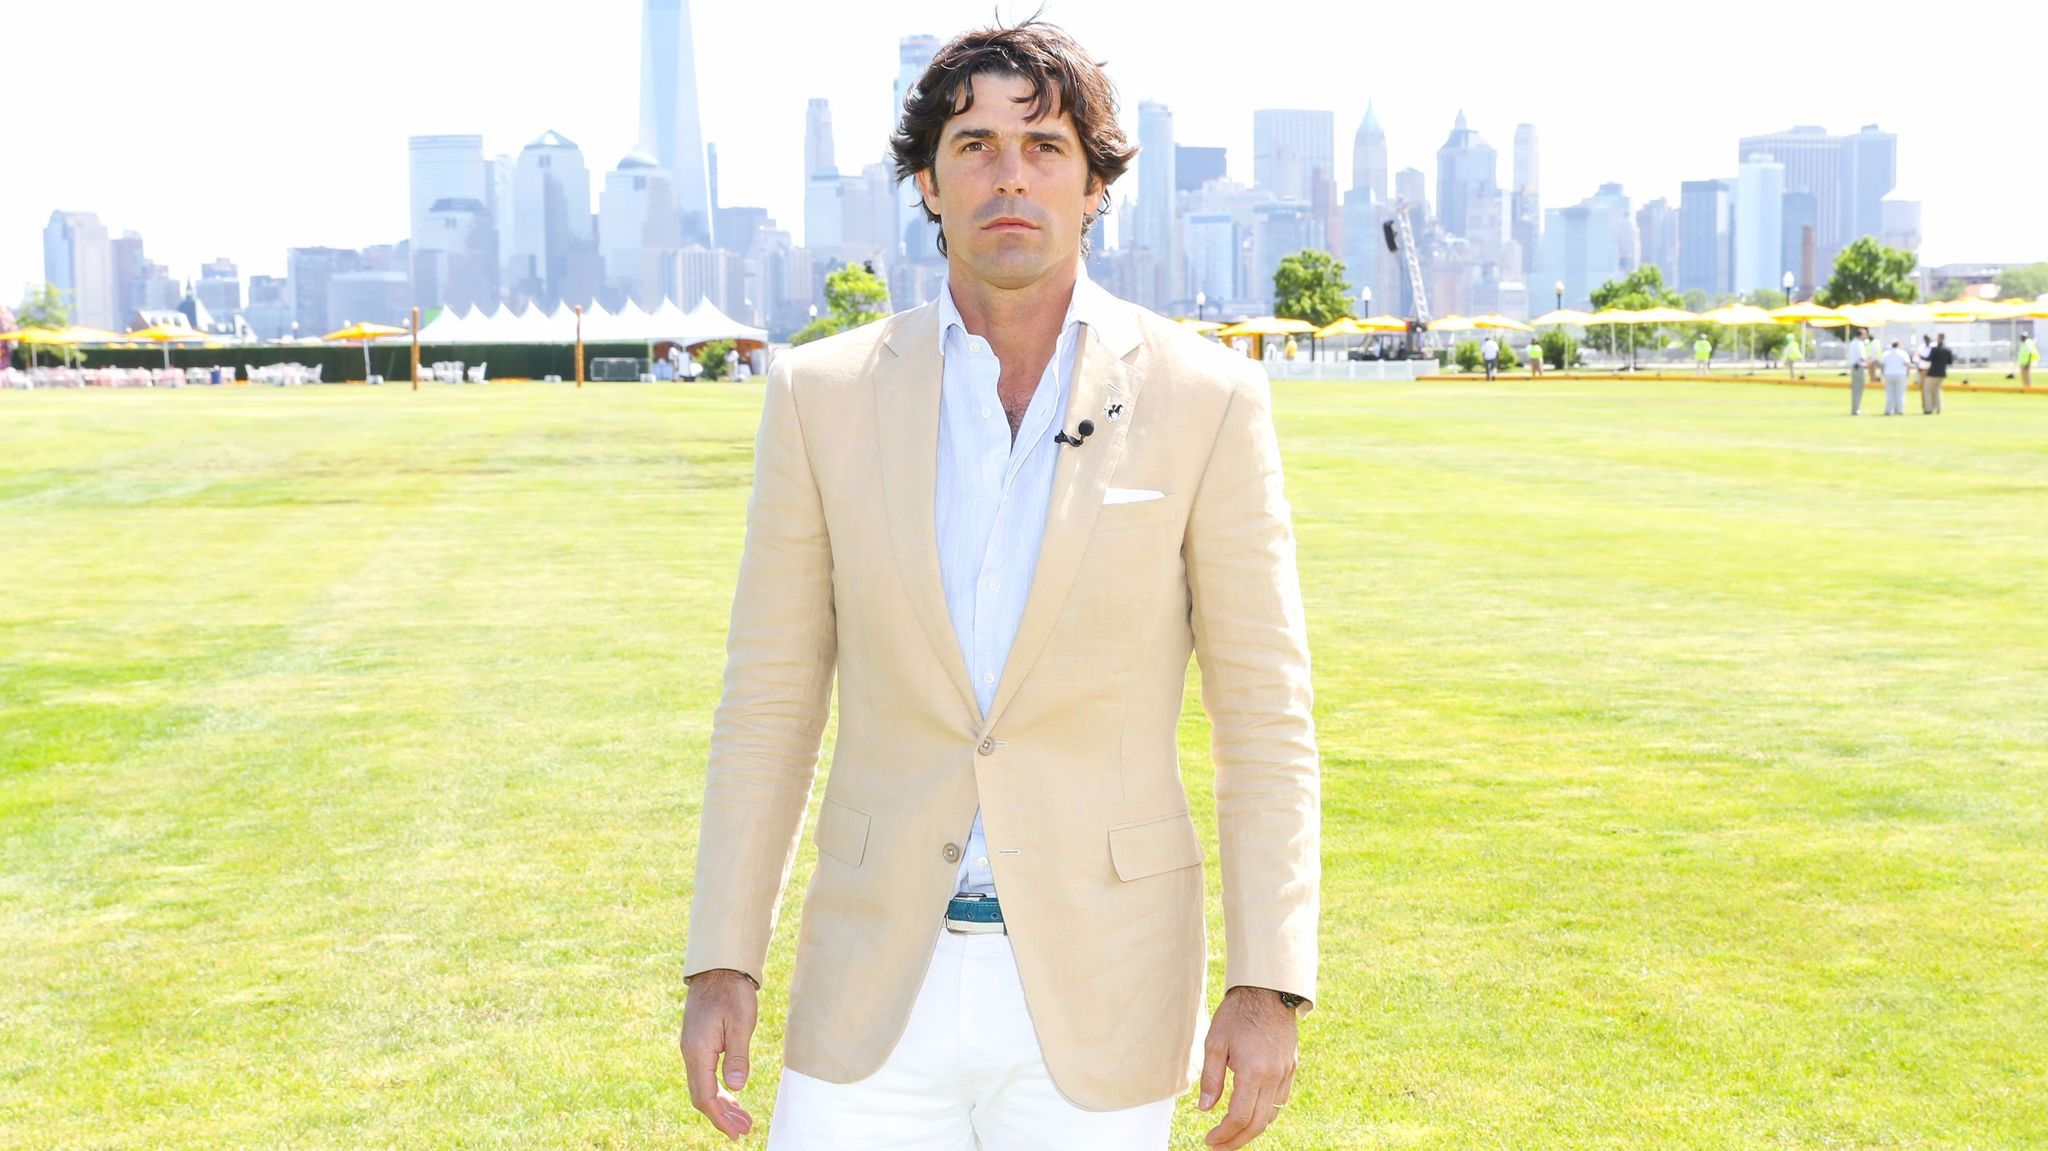 Nacho Figueras attends the Veuve Cliquot Polo Classic in Jersey City, N.J., on June 3, 2017.